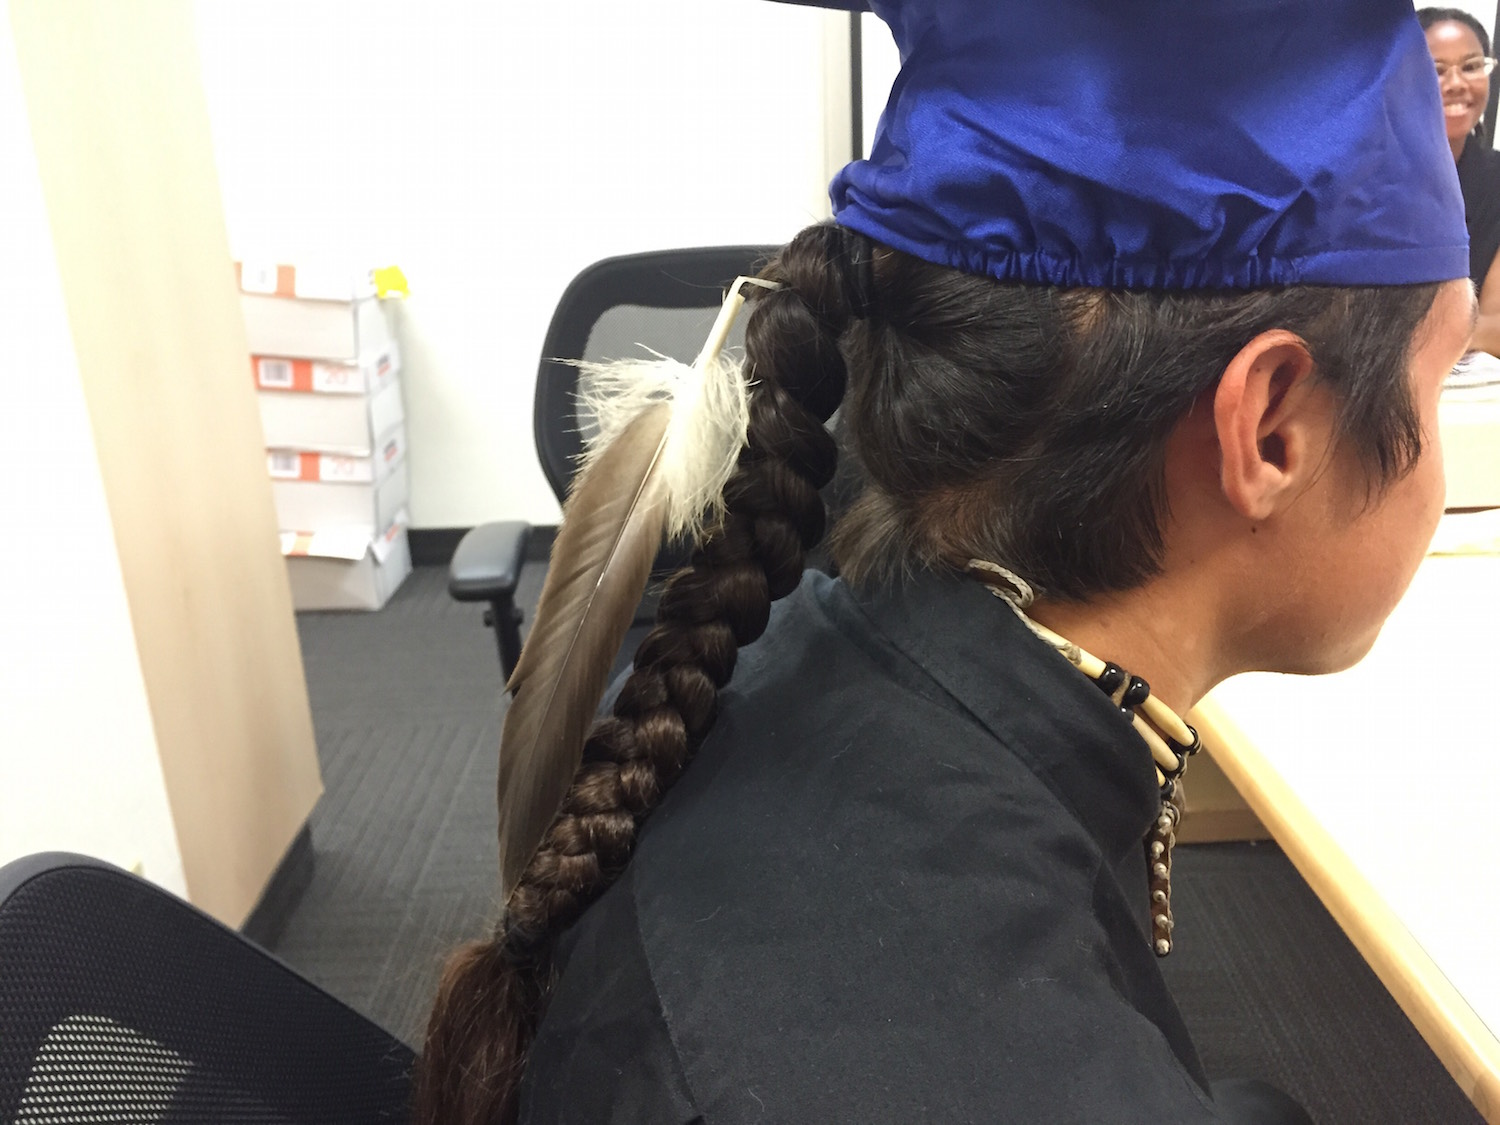 Student from Pit River Tribe graduates with eagle feather in cap